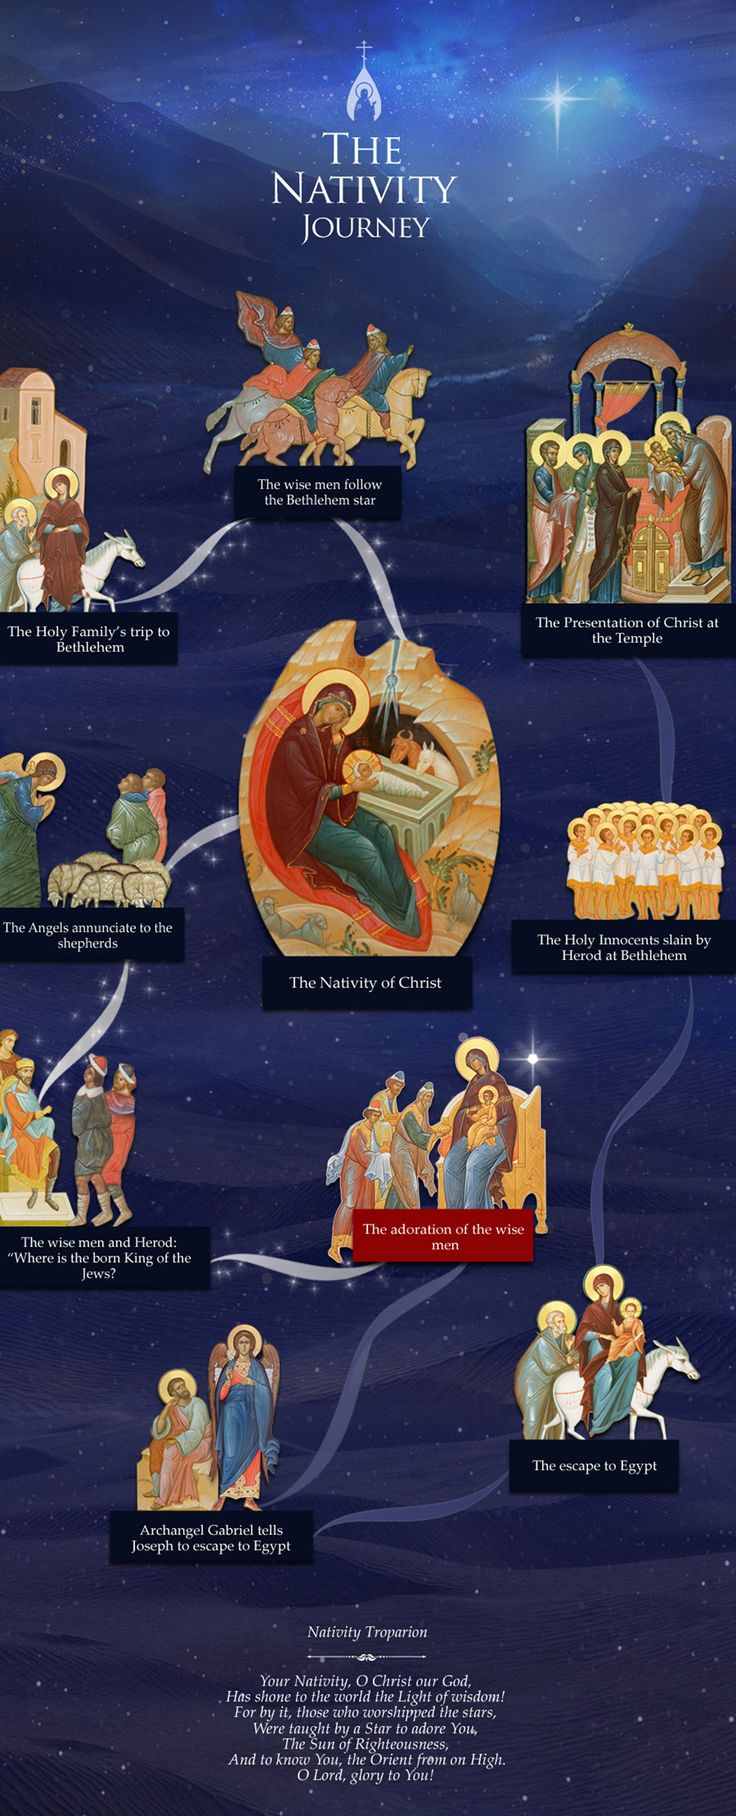 The Nativity Journey READ MORE: http://catalog.obitel-minsk.com/nativity-journey/?&___store=default	#CatalogOfGoodDeeds #CatalogOfStElisabethConvent #Christian #Christianity #workshop #ourworkshops #StElisabethConventWorkshop #monastery  #orthodox #orthodoxy #church #orthodoxchurch